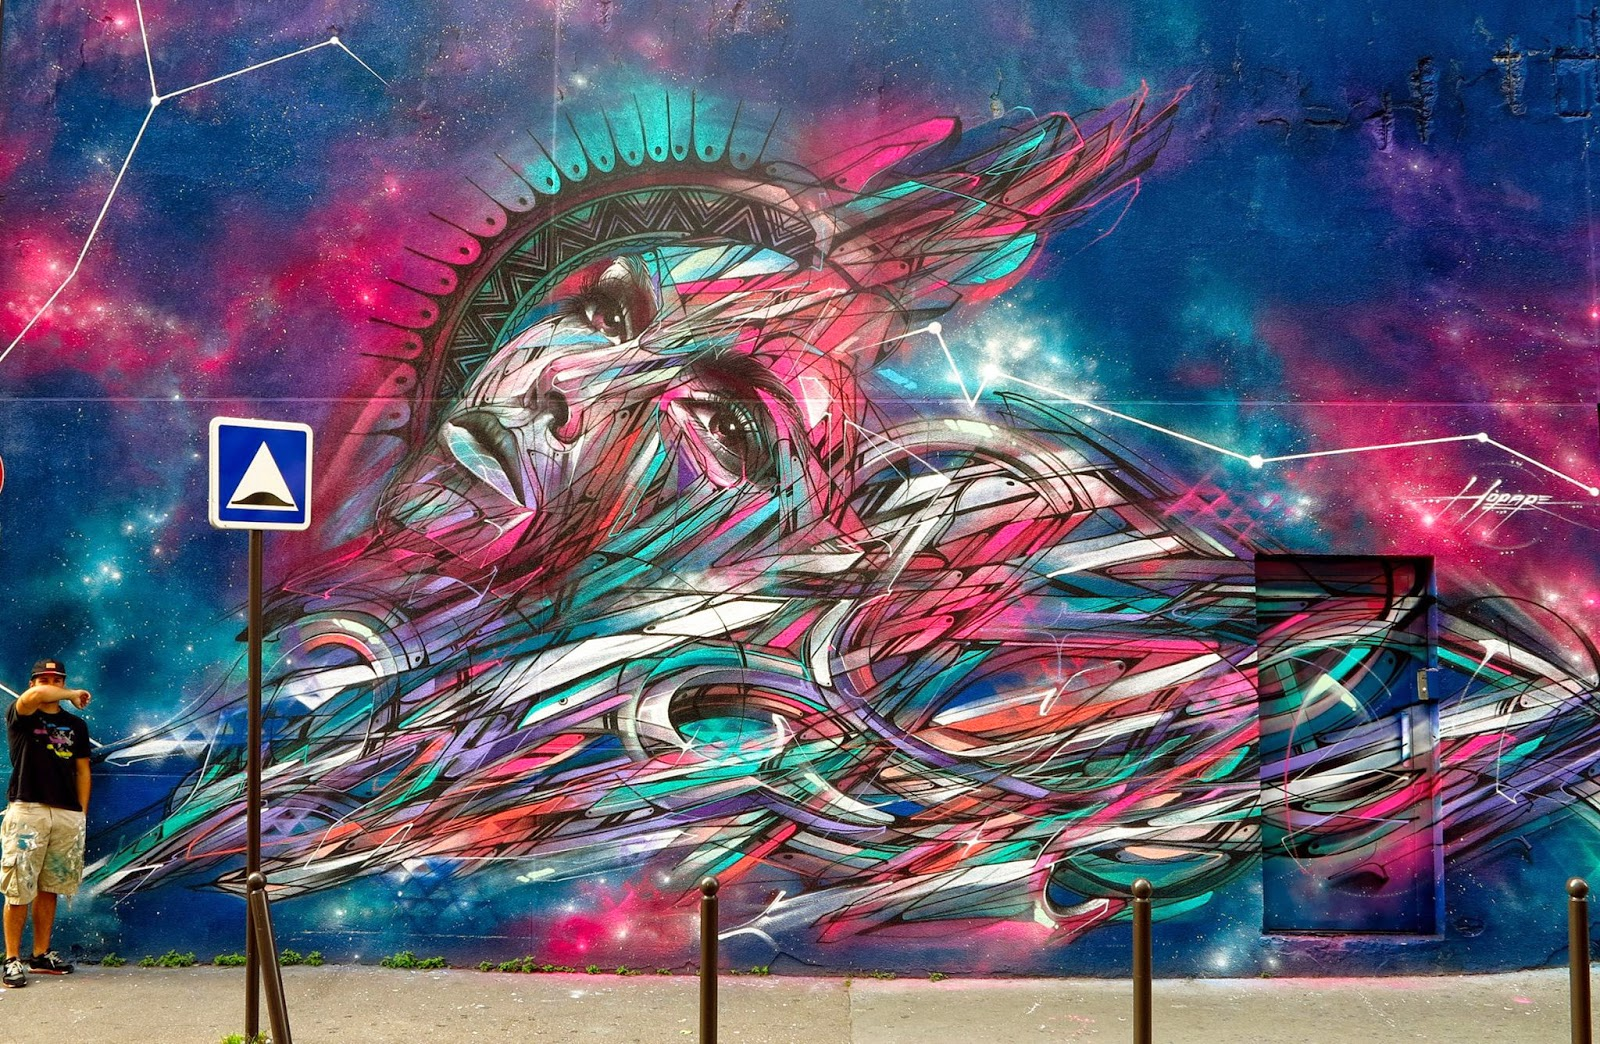 Our friend Hopare spent the last few days working on this brilliant new piece in the 20th district of Paris in France.